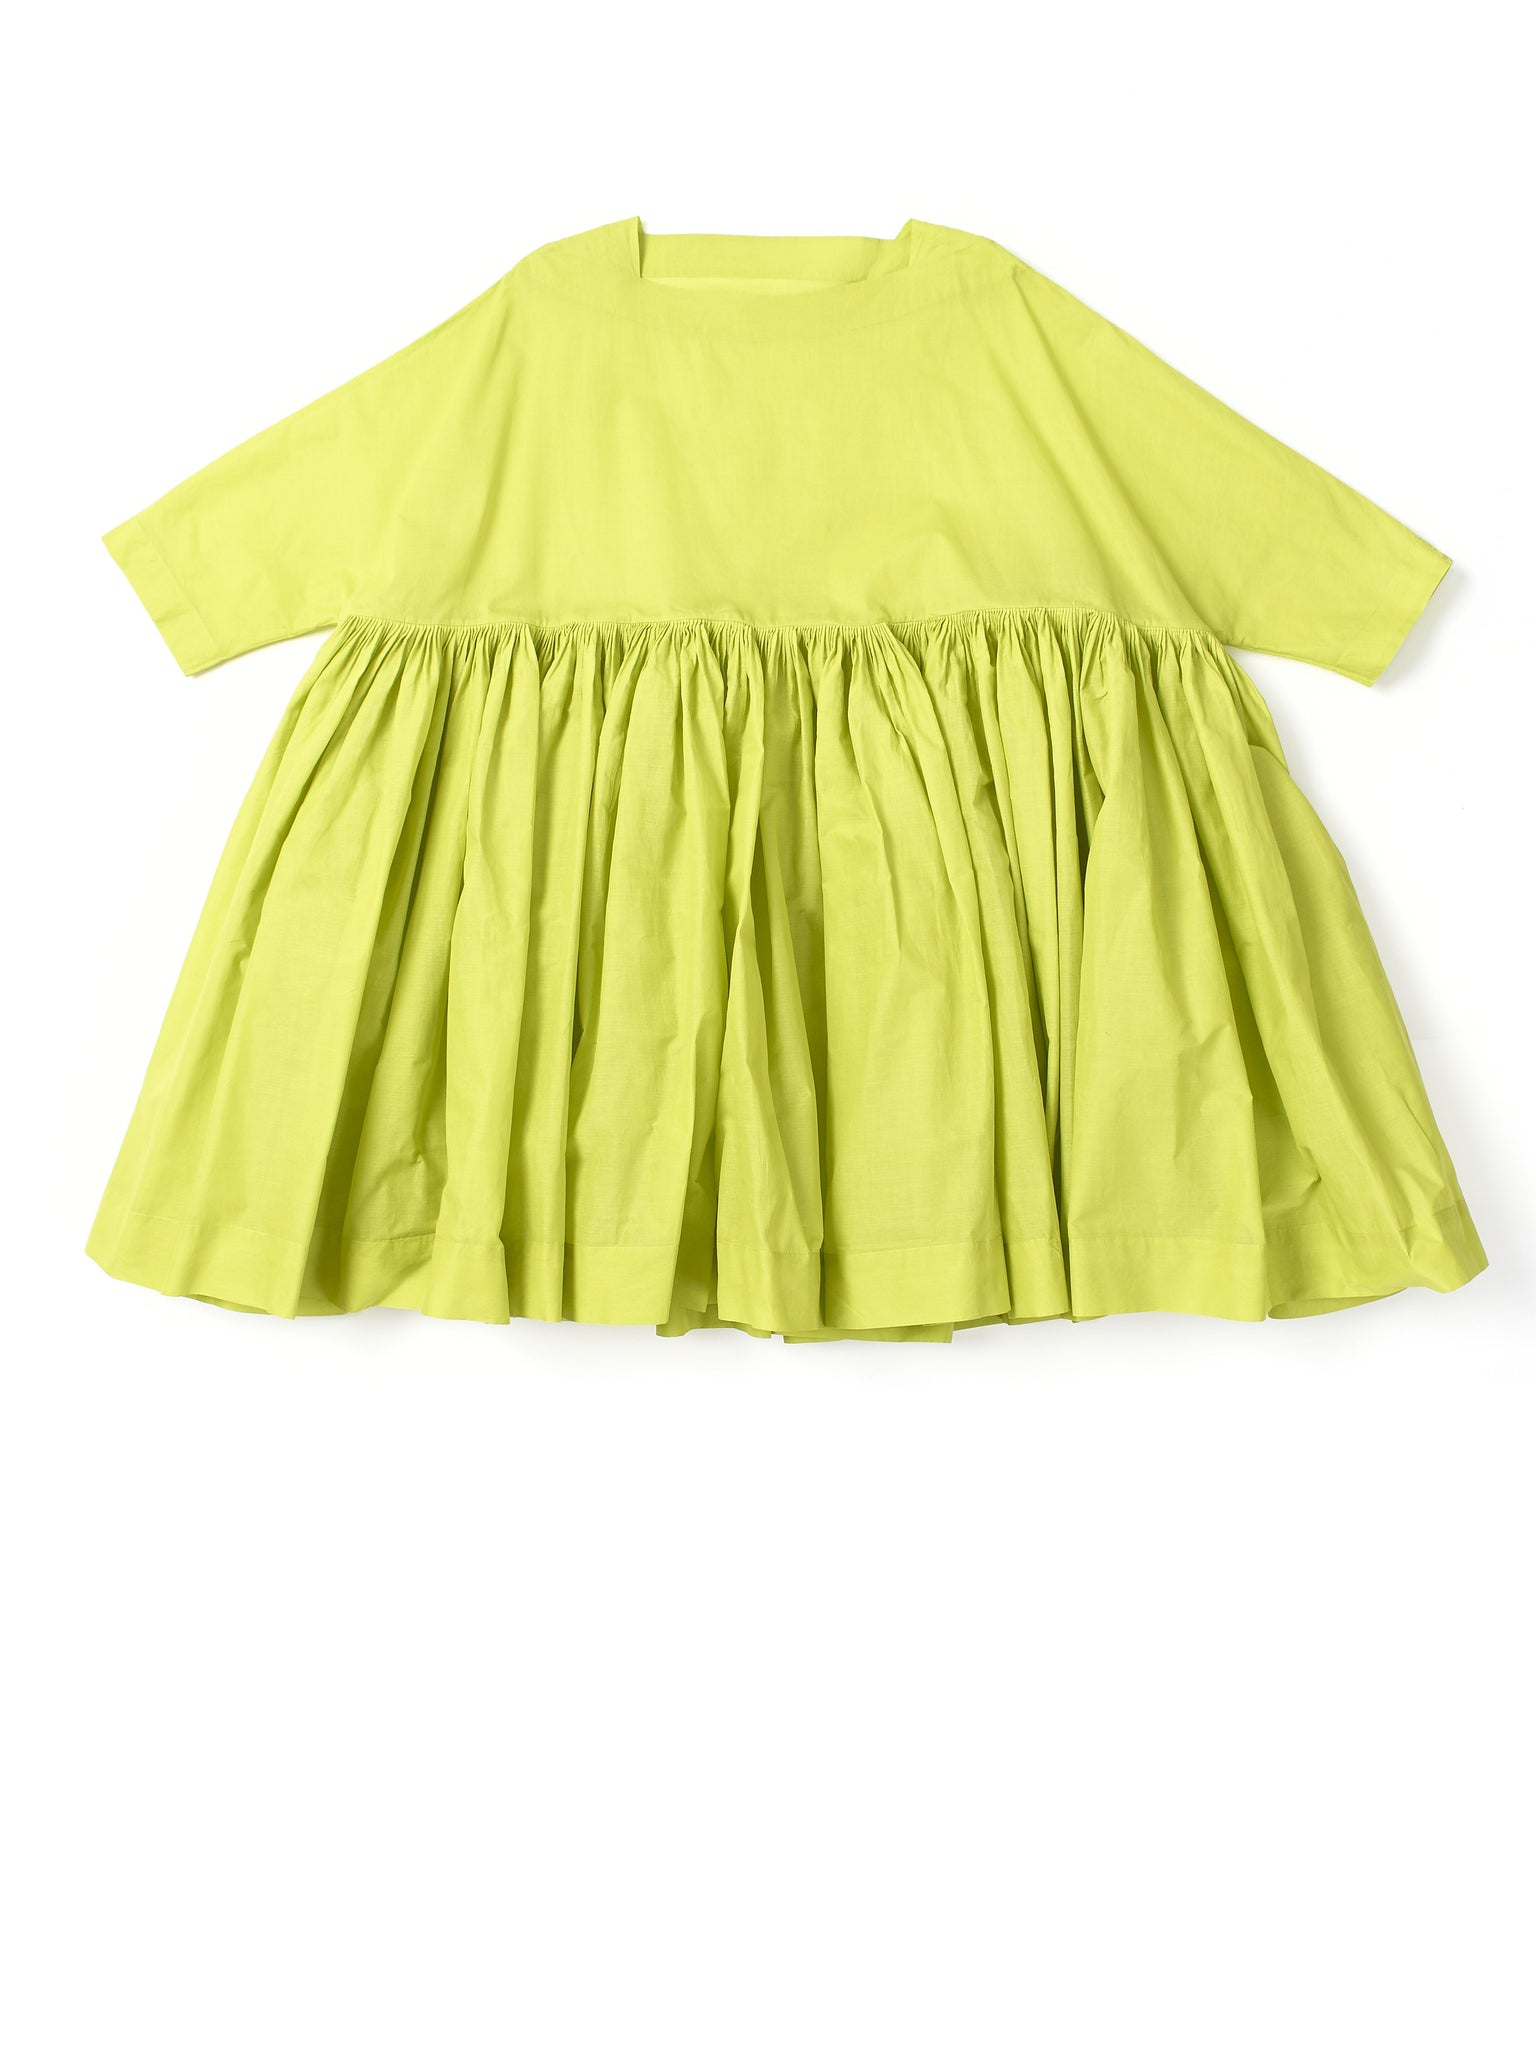 green ruffled dress